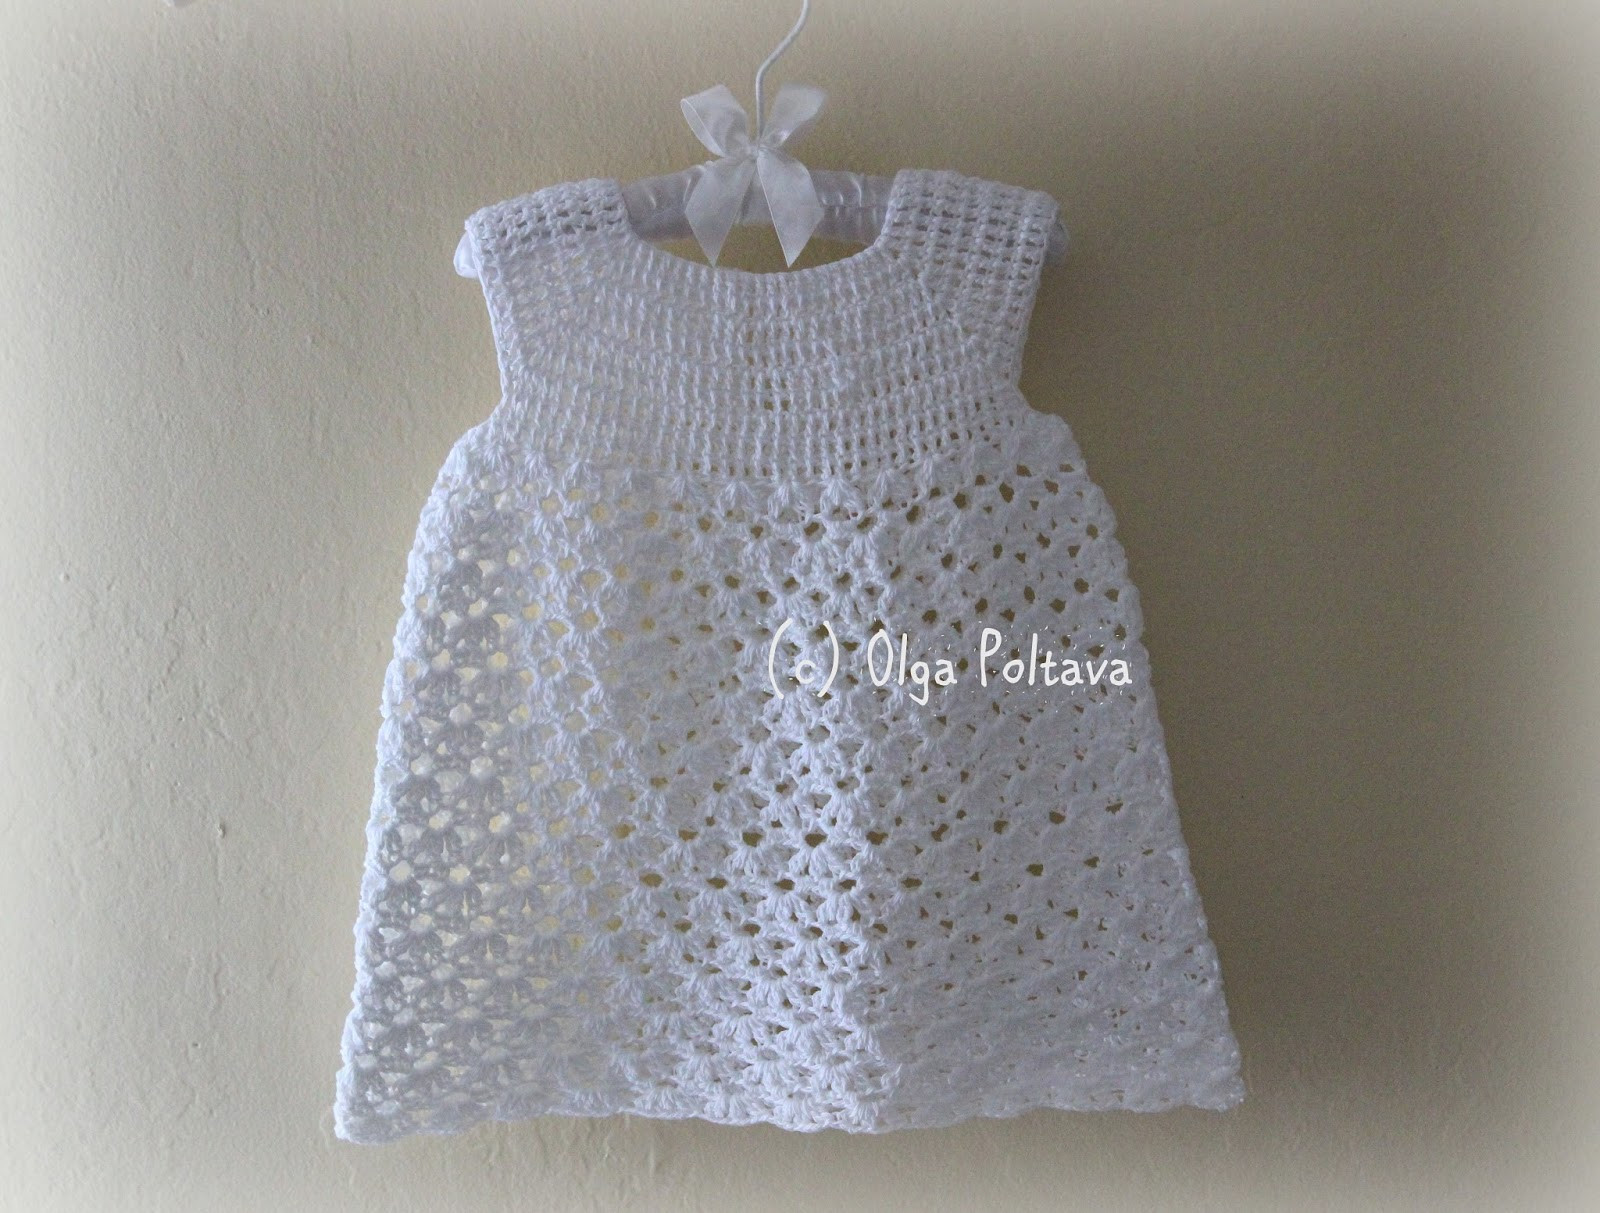 Crochet Baby Dress Luxury Lacy Crochet Two New Patterns Baby Dress and Girls Hat Of Charming 50 Photos Crochet Baby Dress